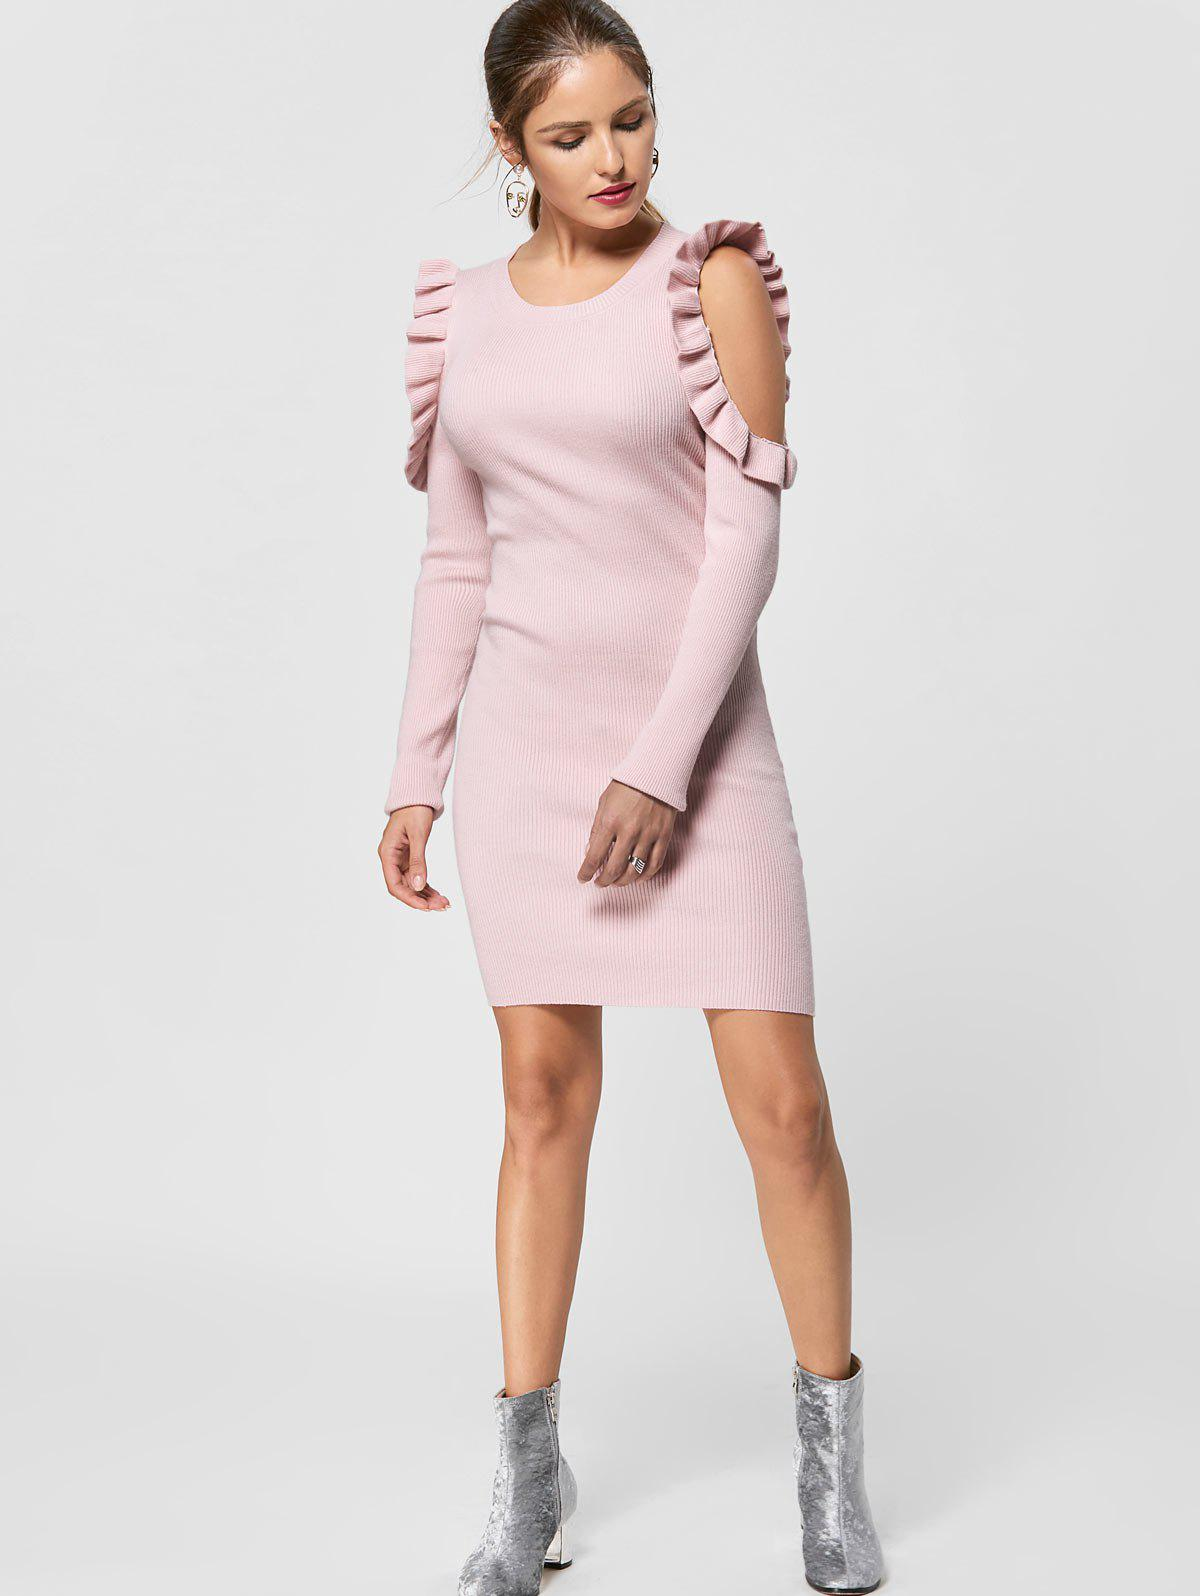 Ruffle Trim Cold Shoulder Jumper Dress - LIGHT PINK S